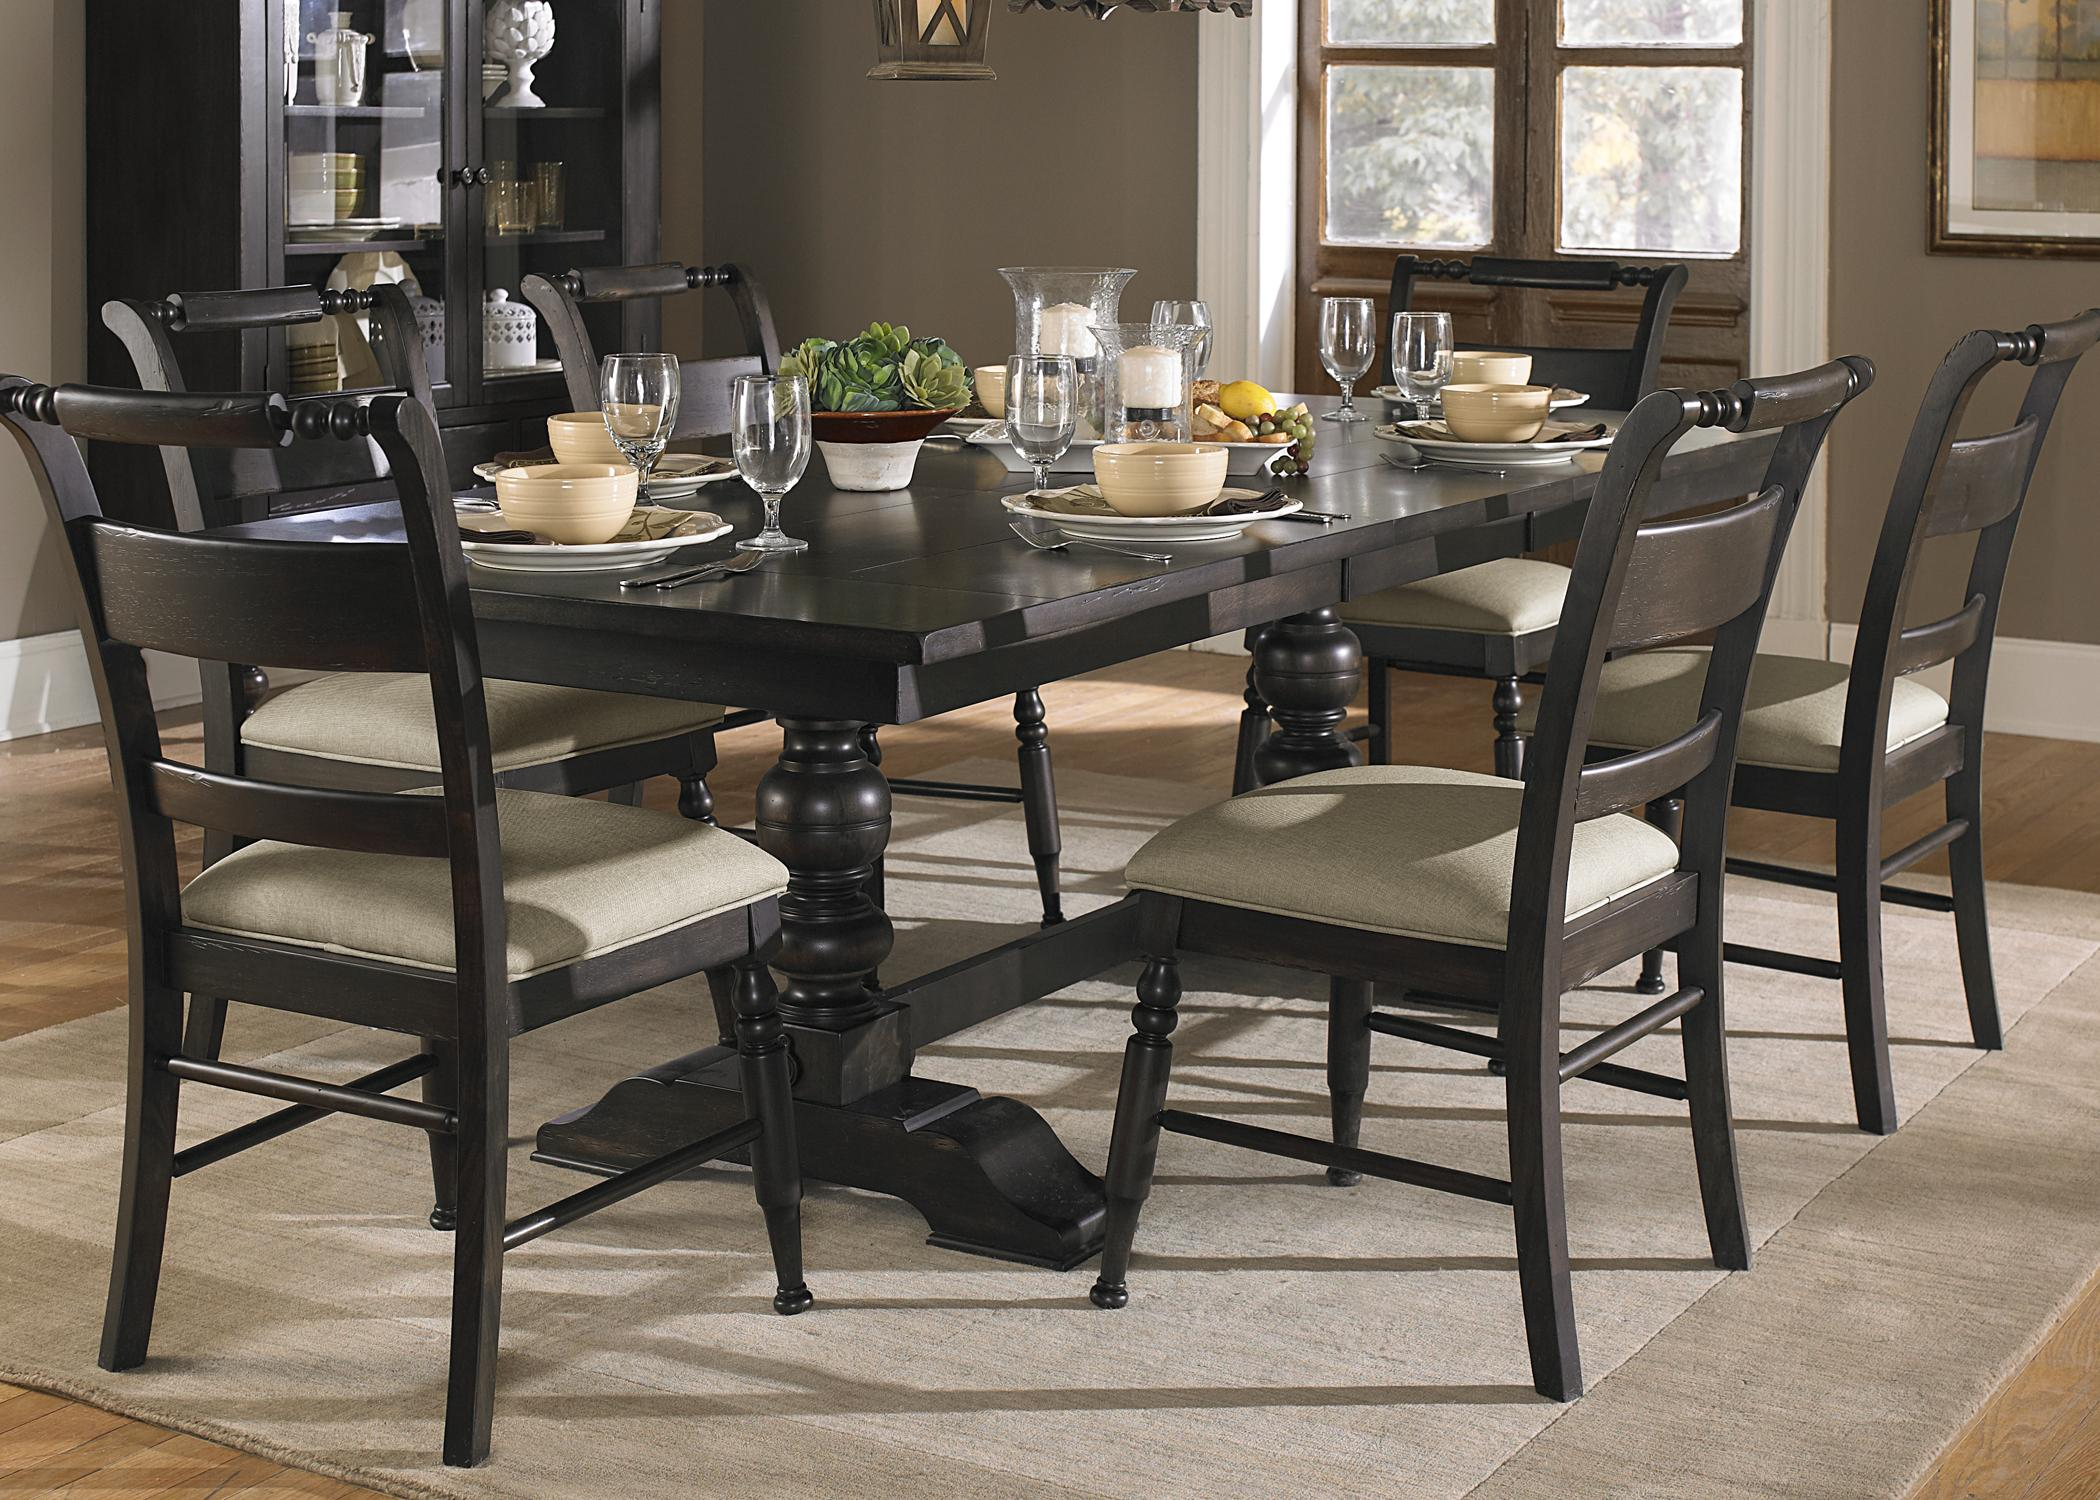 Lovely Trestle Dining Table Set Part - 6: 7 Piece Trestle Dining Room Table Set